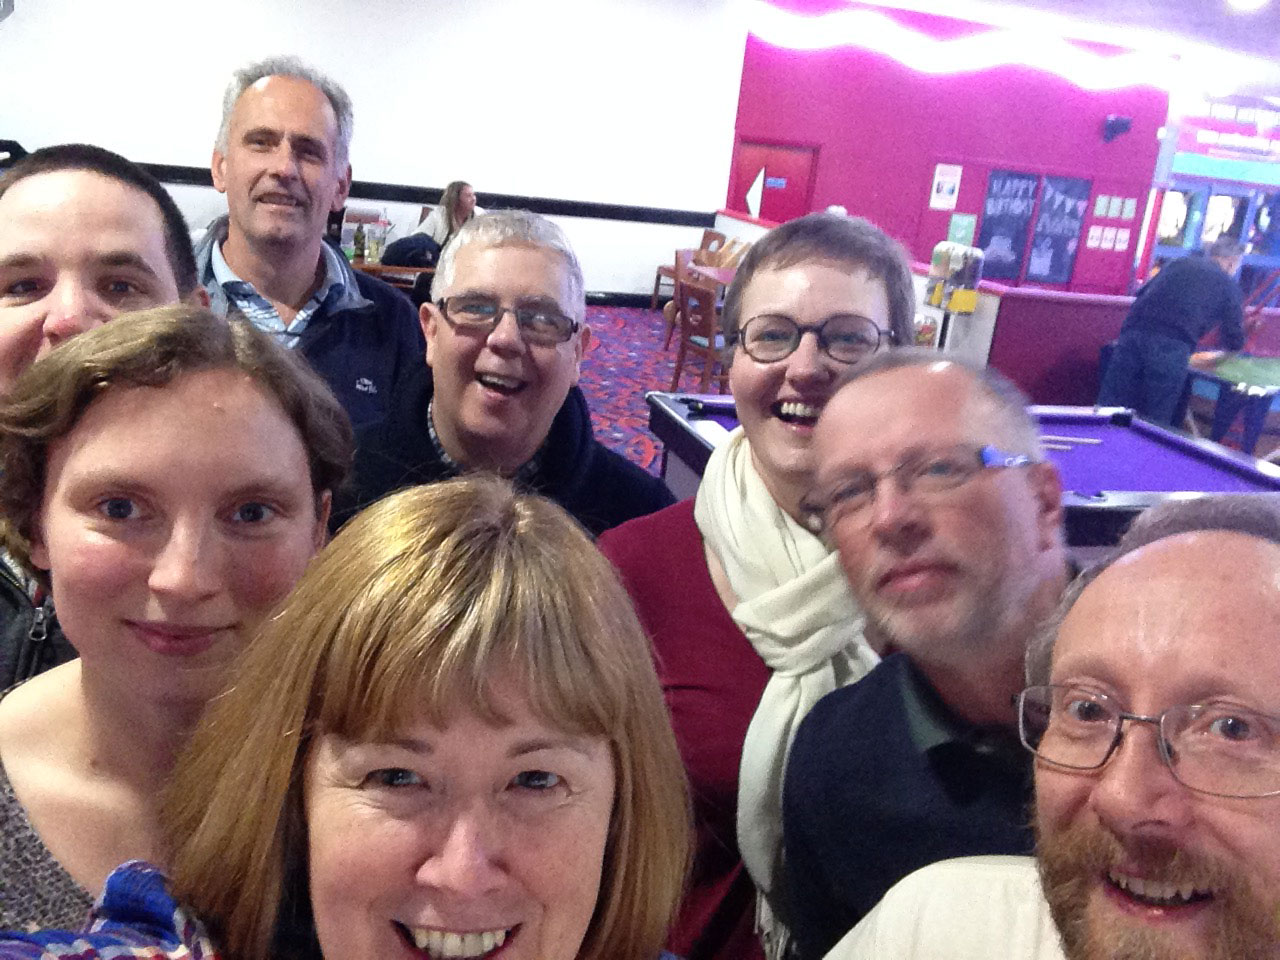 Path of Renewal ministers take a selfie at a training event